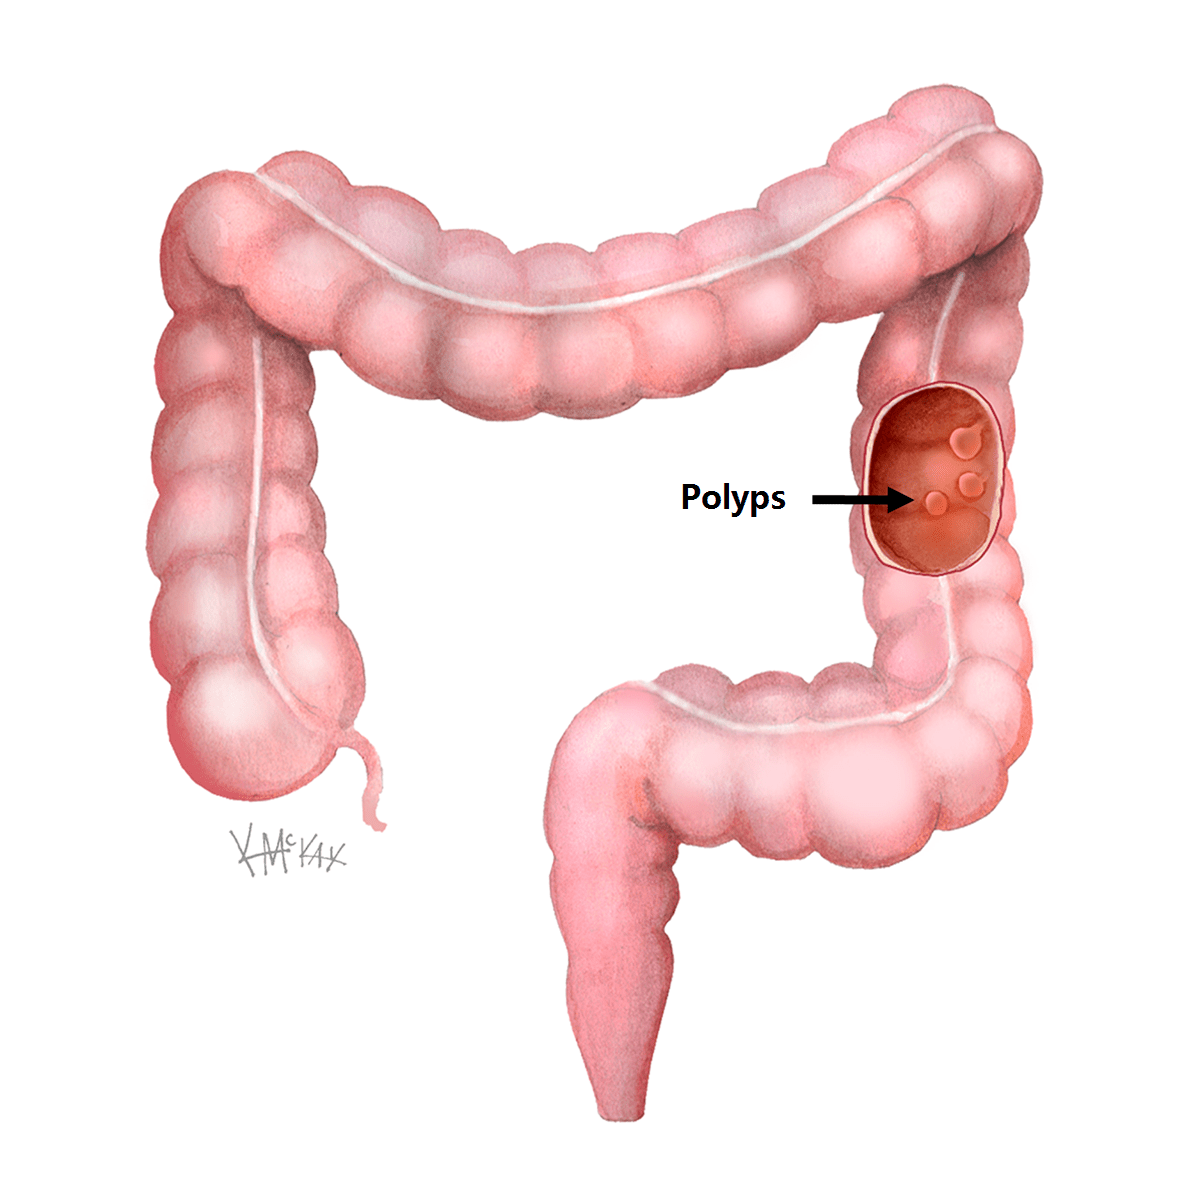 hight resolution of a polyp is an abnormal growth or projection from the mucosal surface or lining of the bowel wall a polyp typically has the appearance of a small